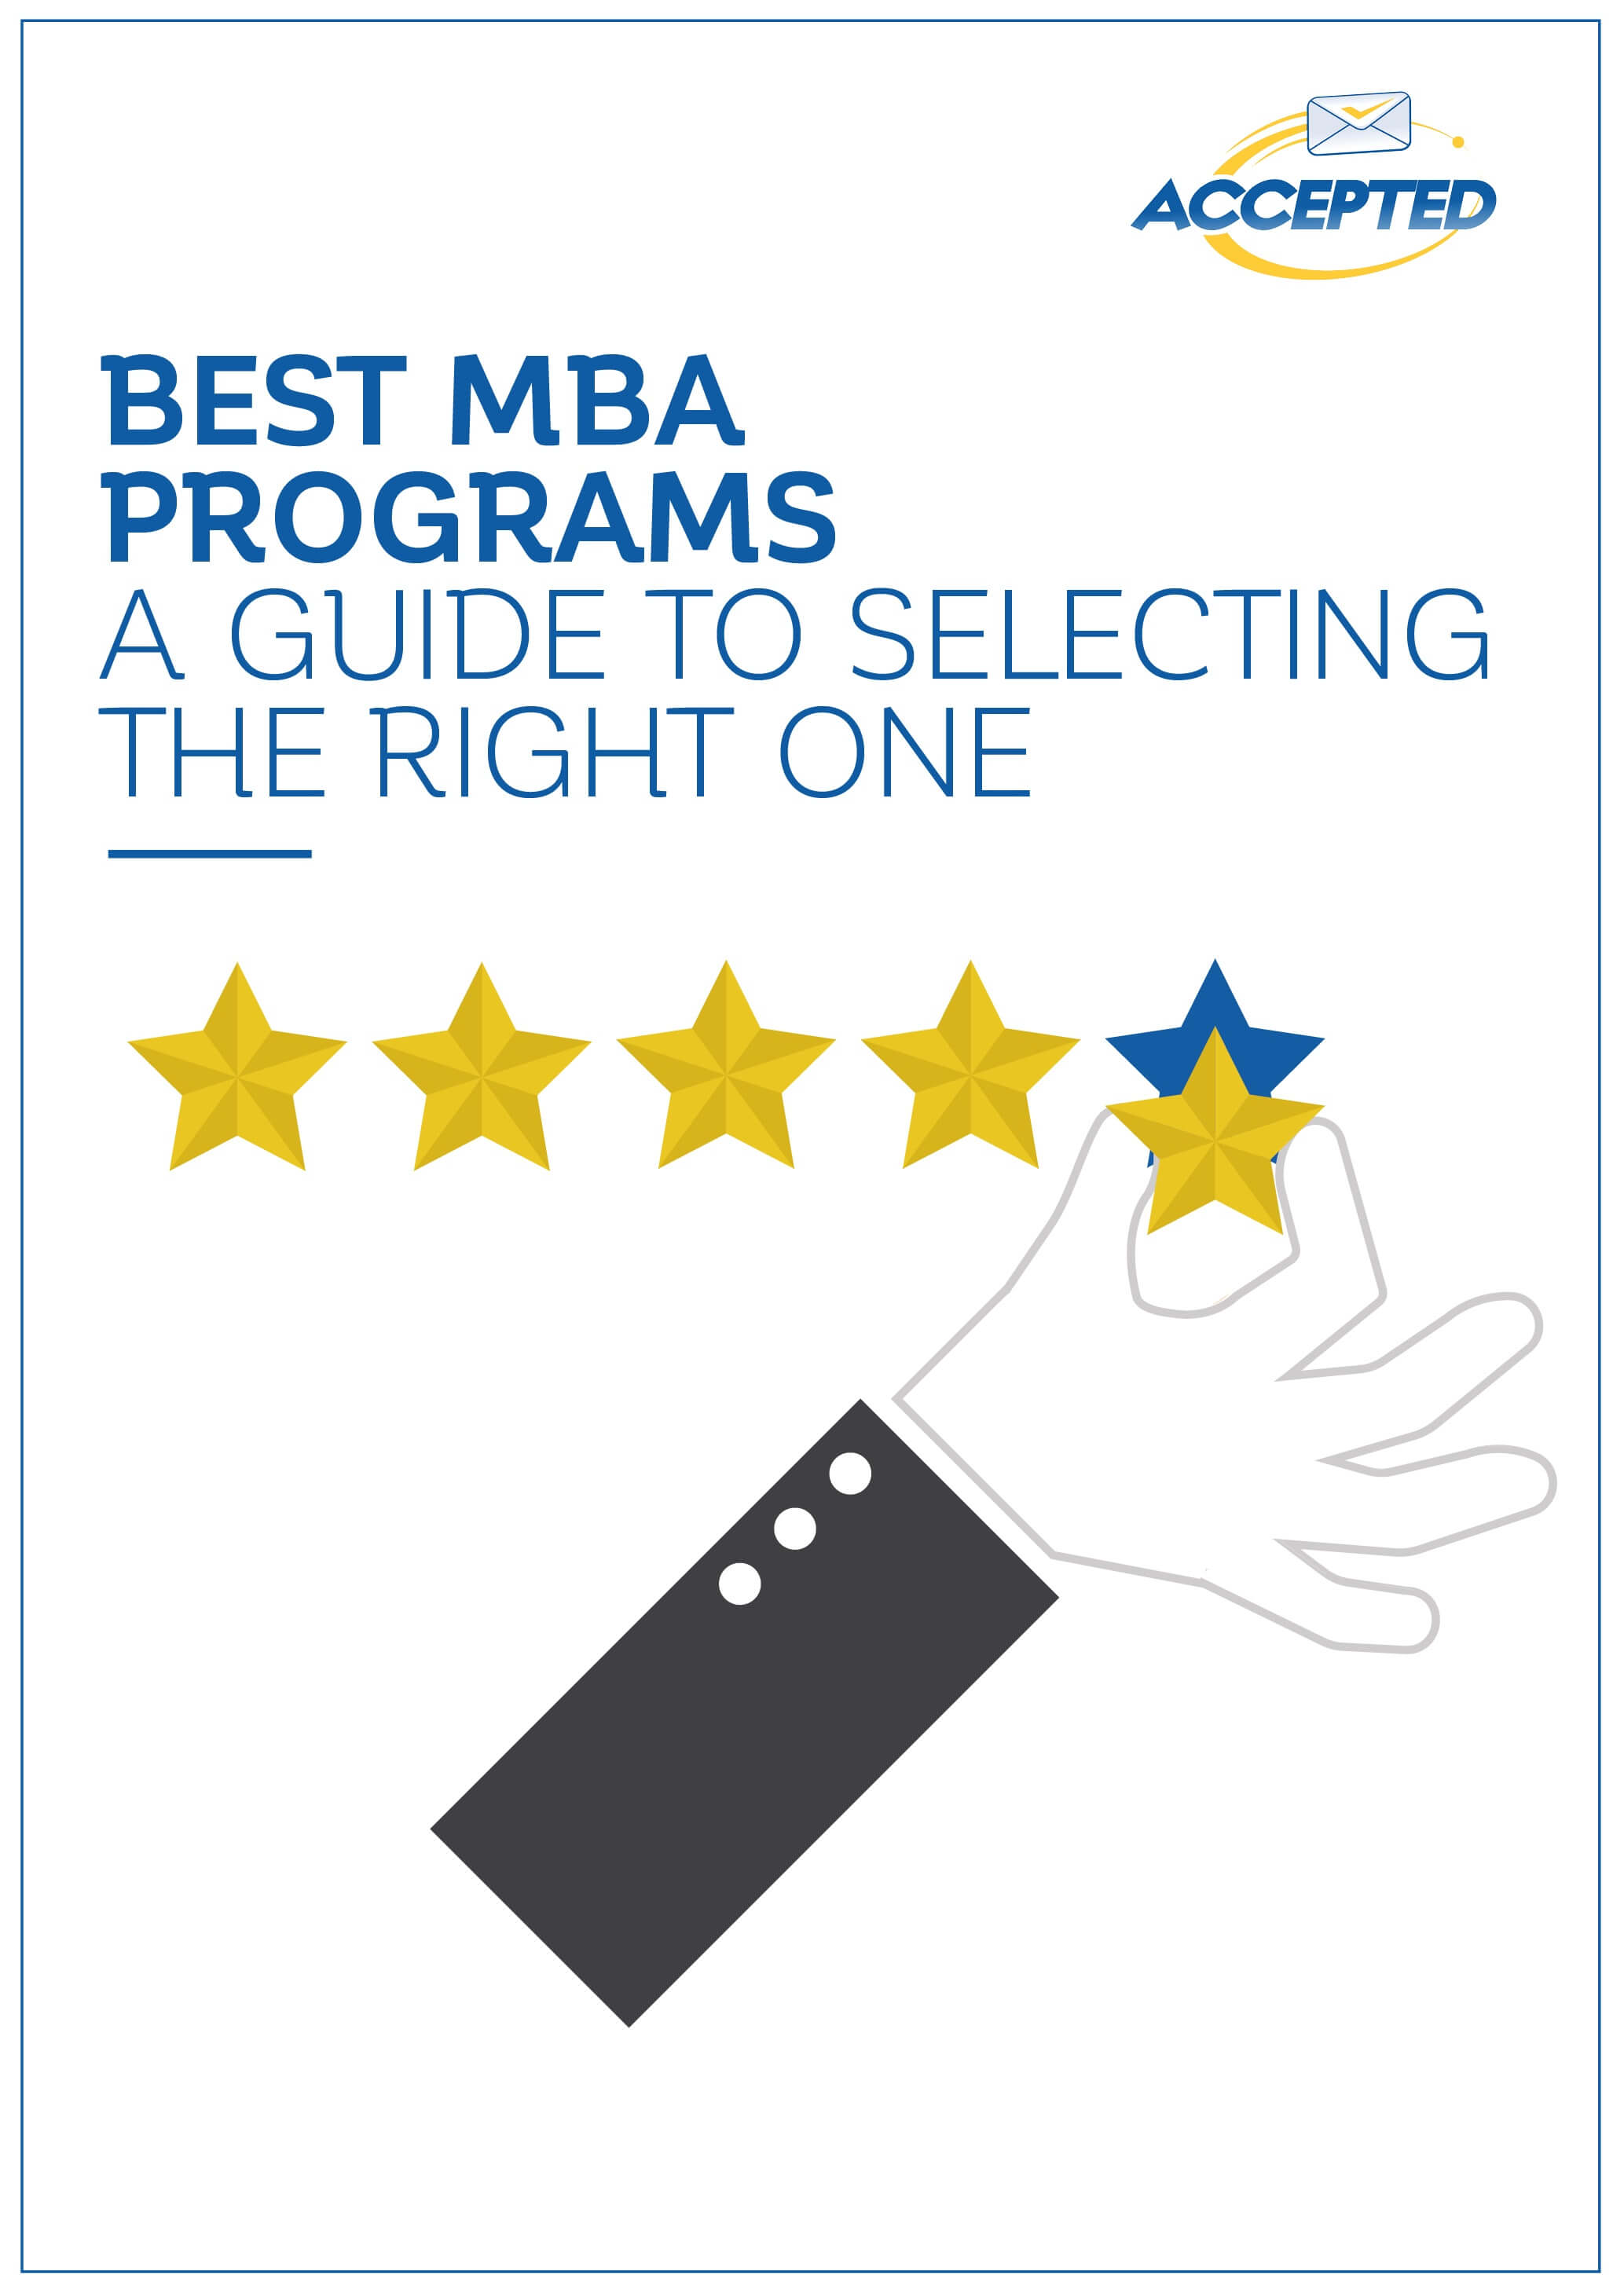 Best_MBA_Programs.jpg